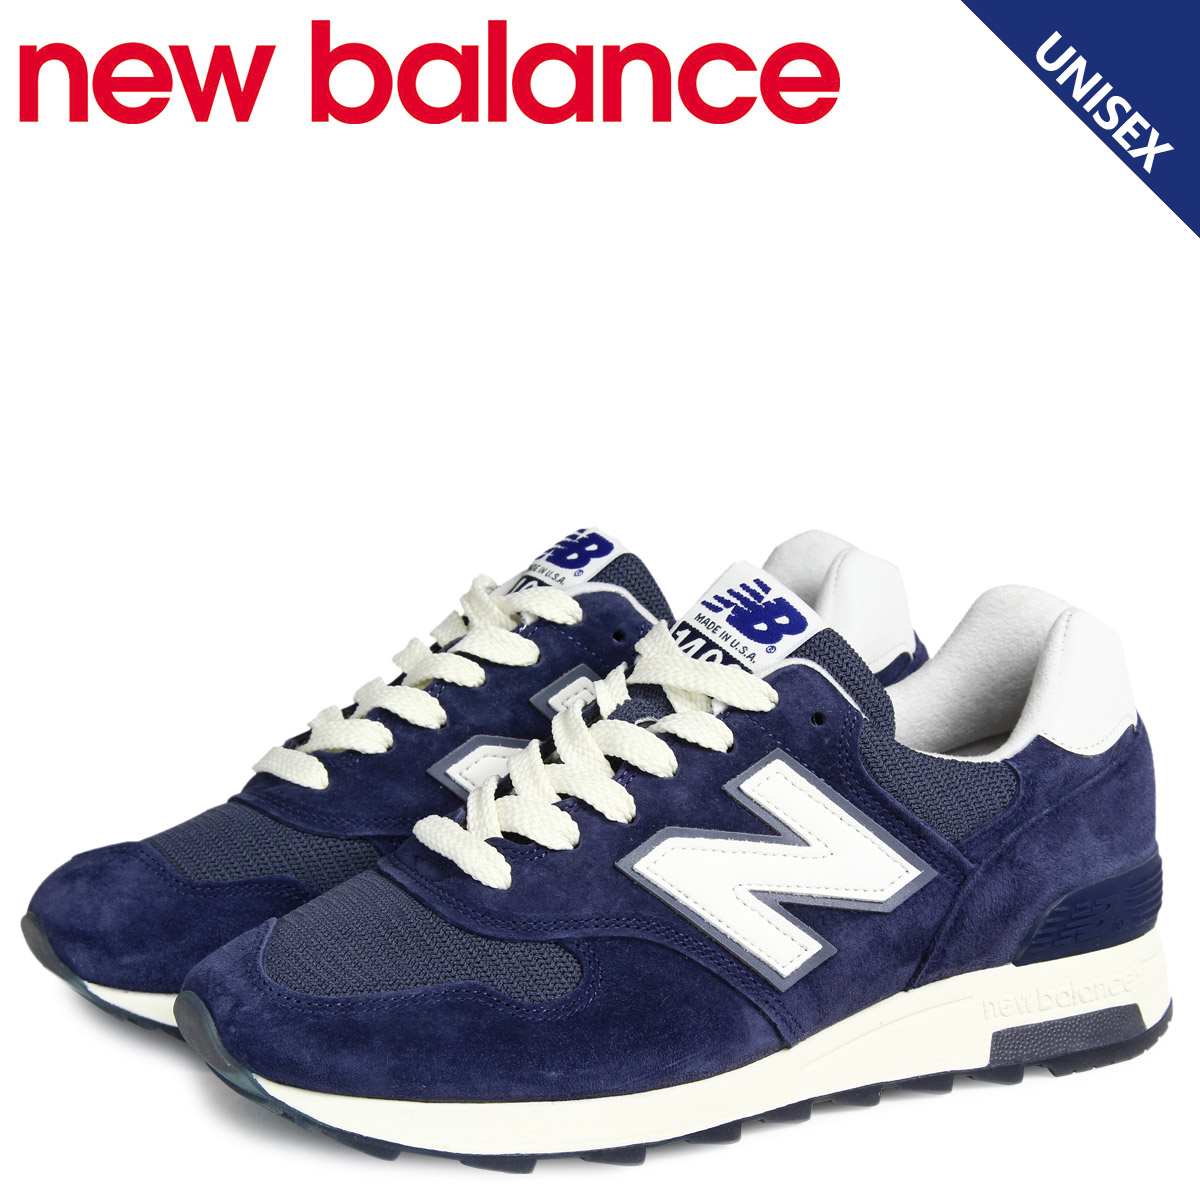 save off 75103 287cc new balance 1400 men's lady's New Balance sneakers M1400CSE D Wise MADE IN  USA shoes navy